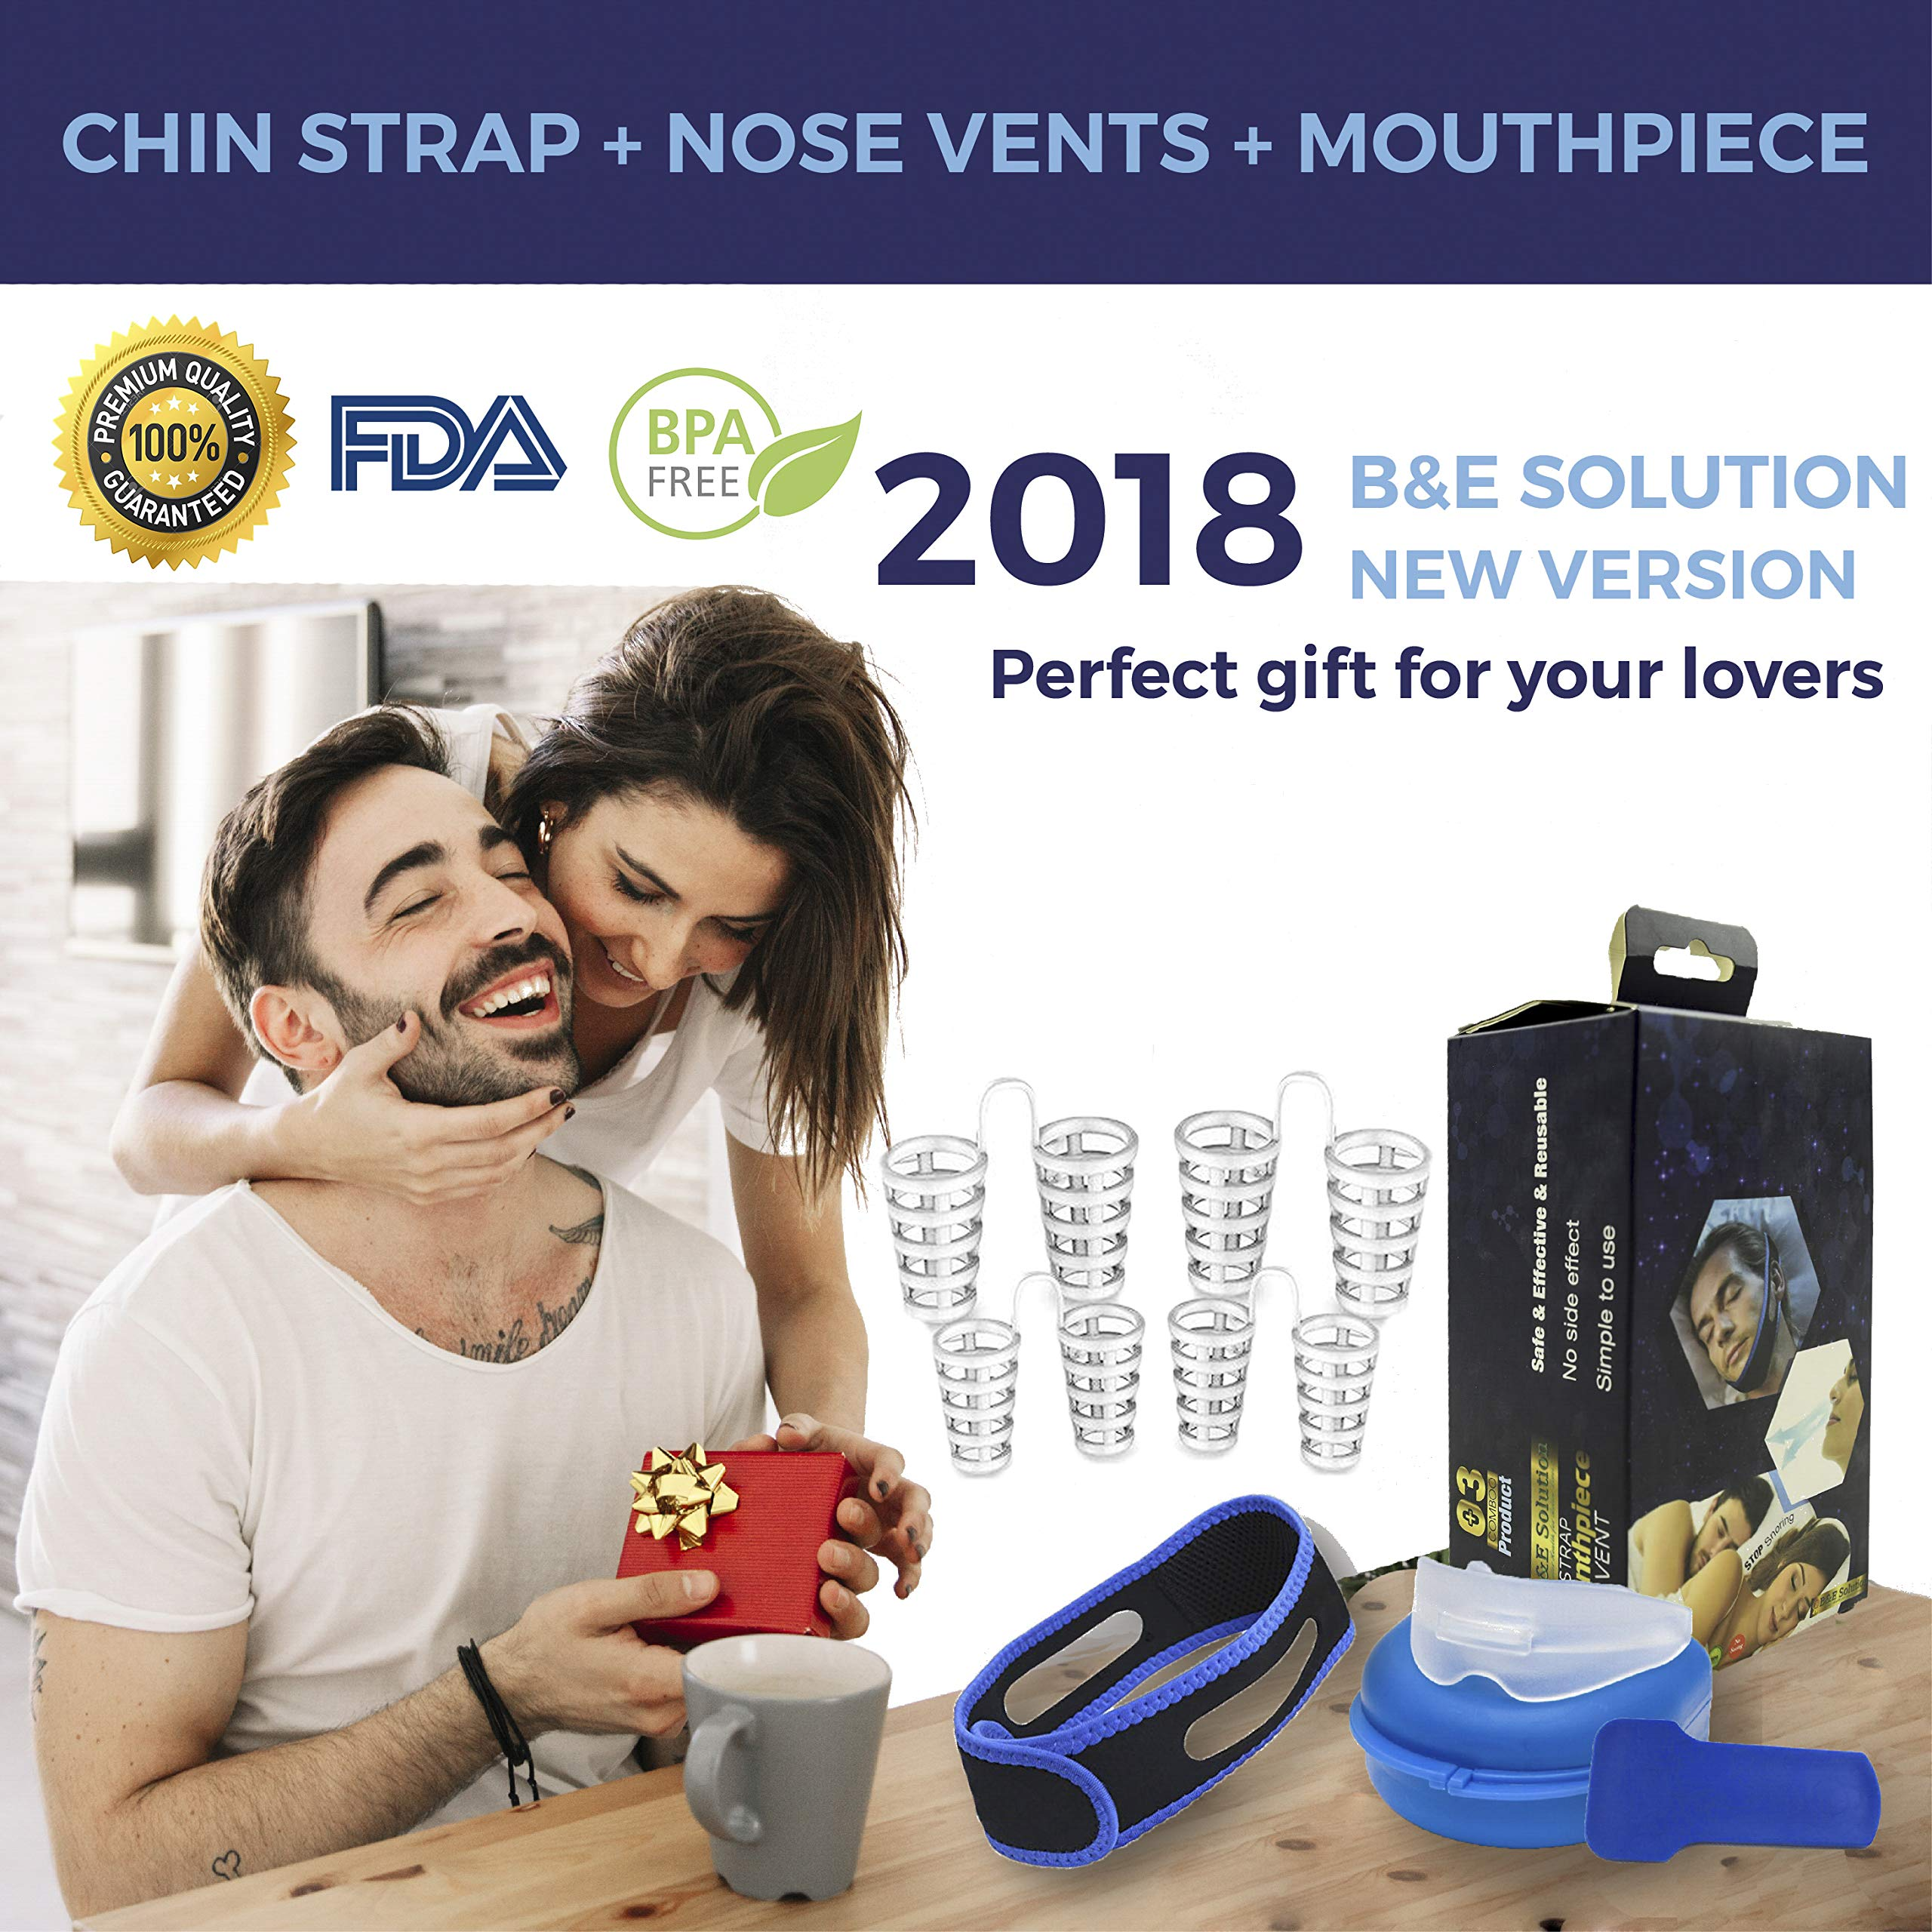 Stop Snoring Chin Strap with 4pcs Anti-Snoring Nose Vents & Mouthpiece for Men & Women –Adjustable Snore Stopper Chin Strap – Natural Snore Reducing Sleep Aid Devices & Stop Teeth Grinding